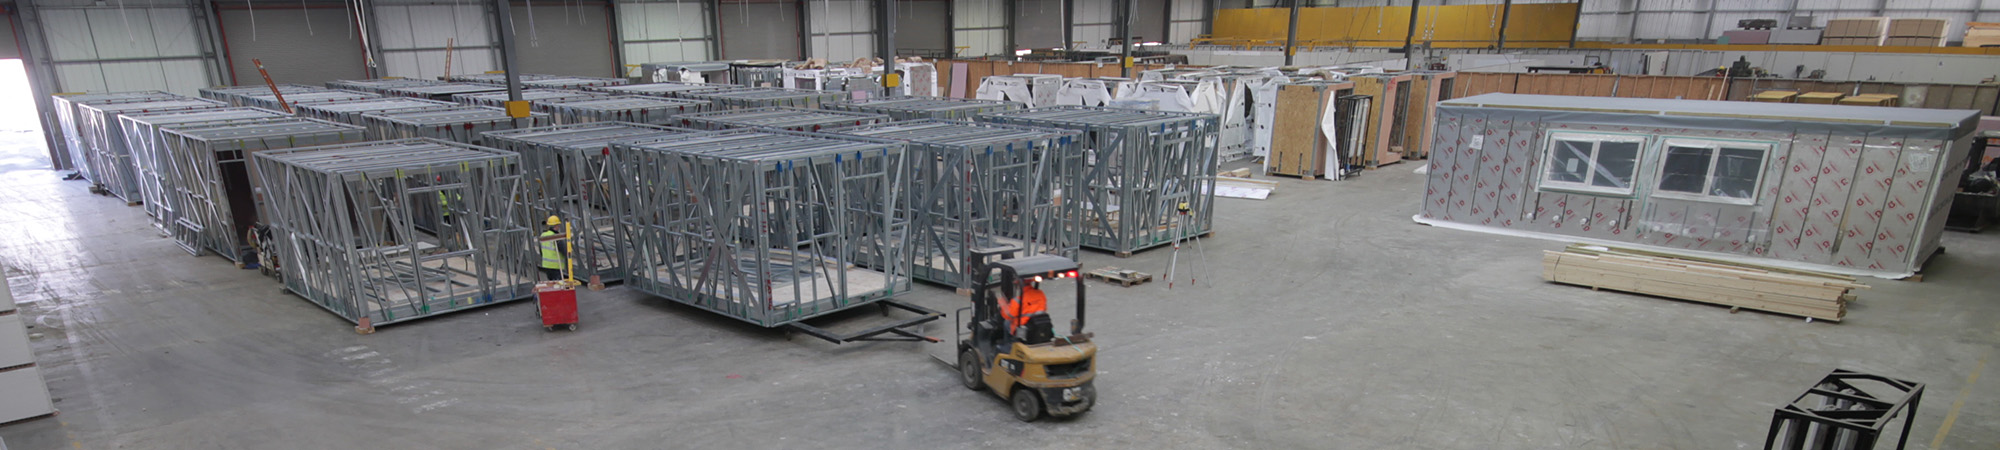 Modules being transported at Caledonian Modular